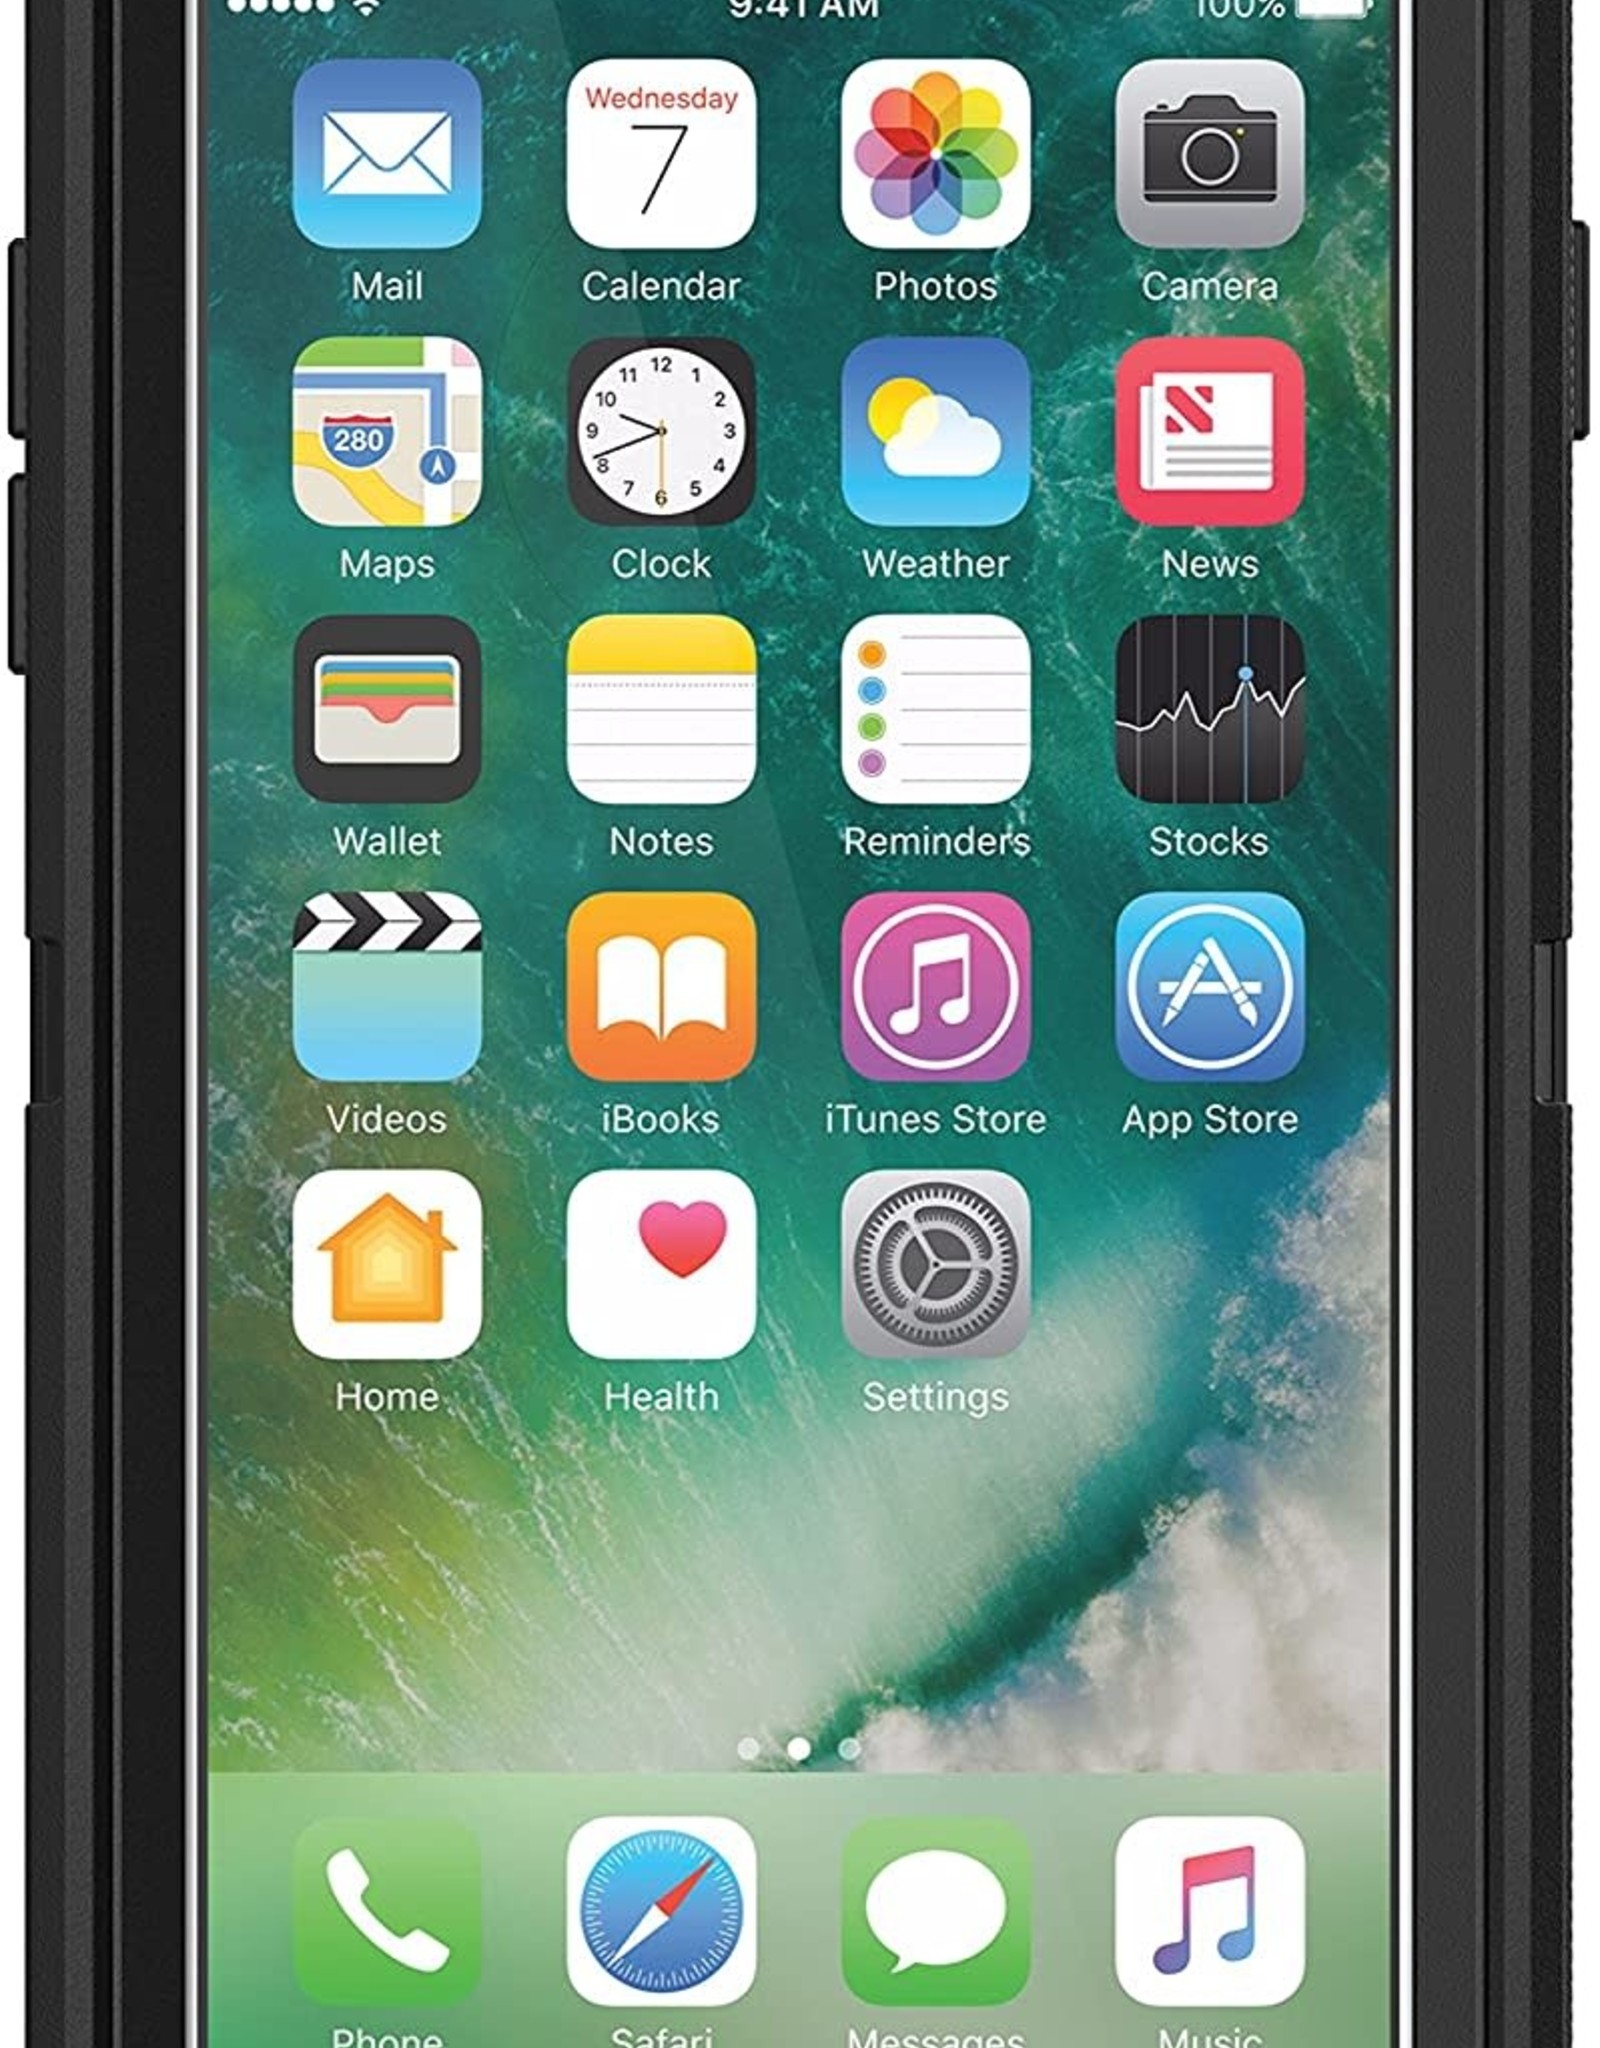 Otter Box OtterBox Defender iPhone 6, 7, 8 w/ Screen Protector